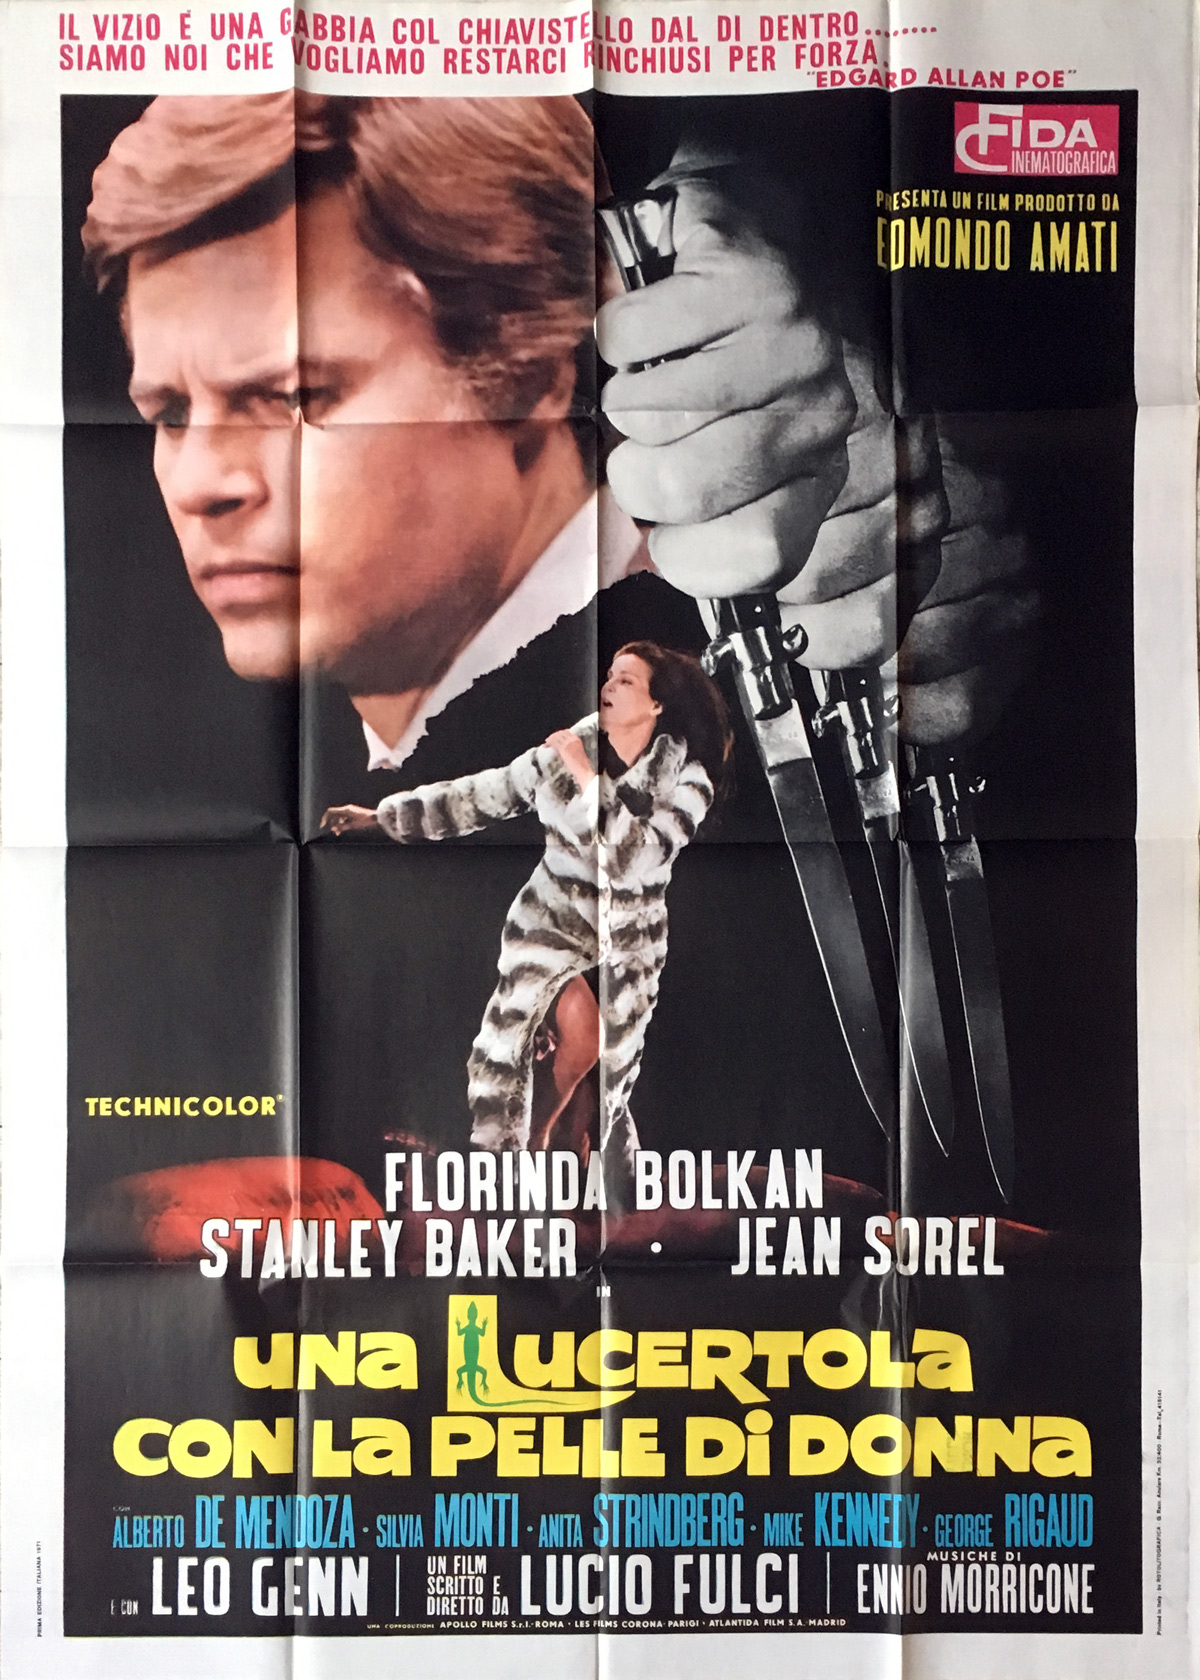 Original italian movie posters for sale, Vintage film posters from Italy